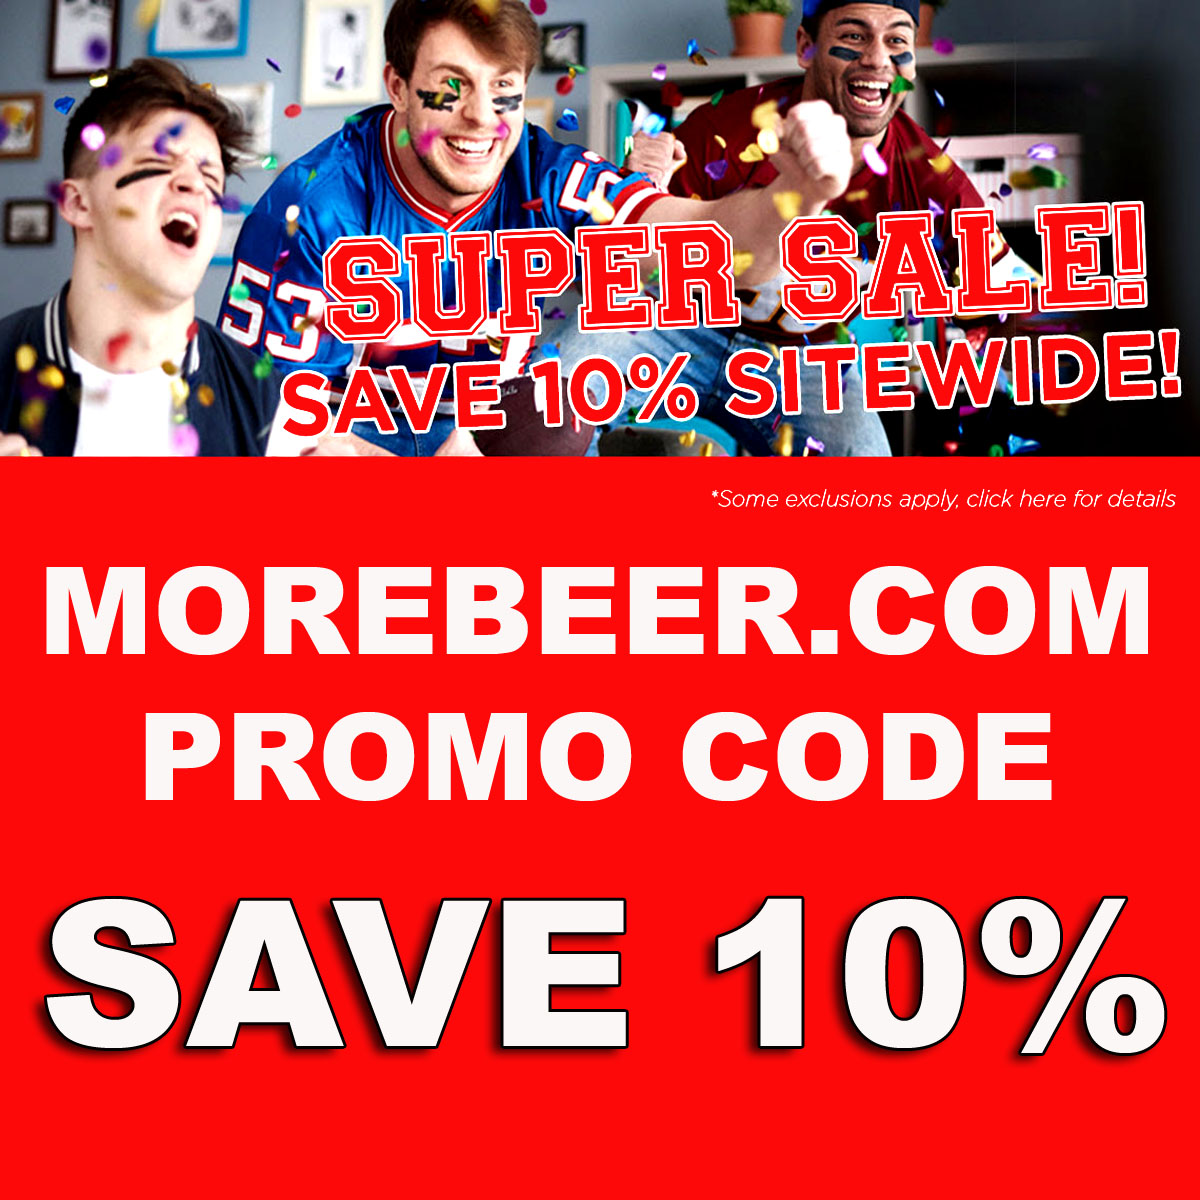 Home Wine Making Coupon Codes for Use this MoreBeer.com coupon code and save 10% sitewide plus get Free Shipping on orders over $59 Coupon Code